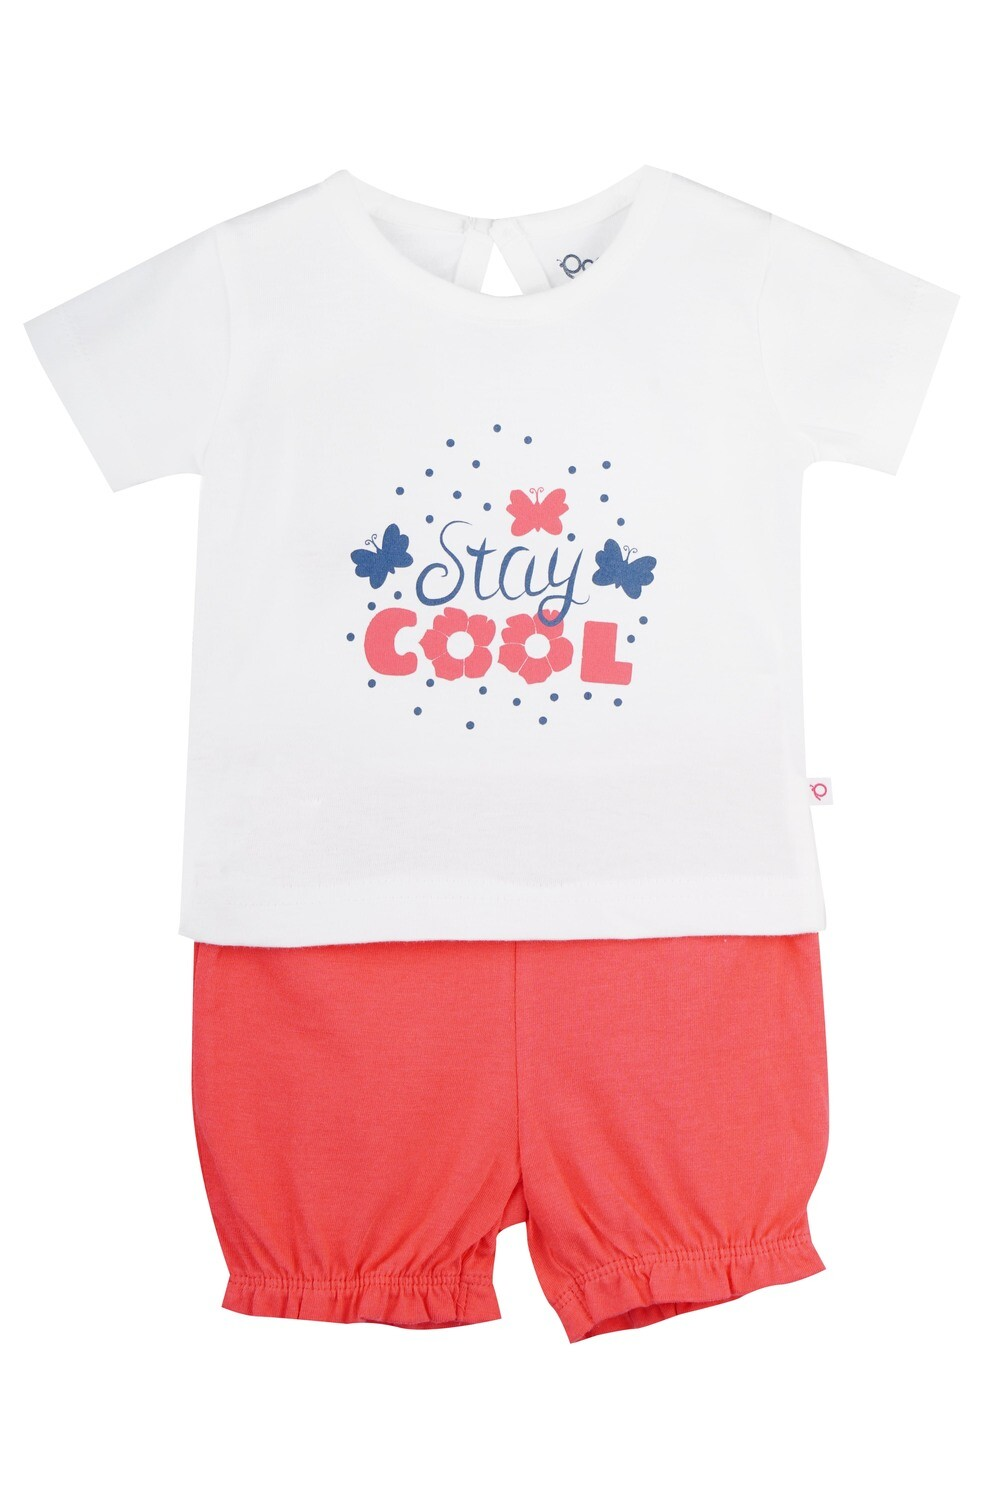 STRAWBERRY Bright White Half sleeve Top and Panties for Baby Girls